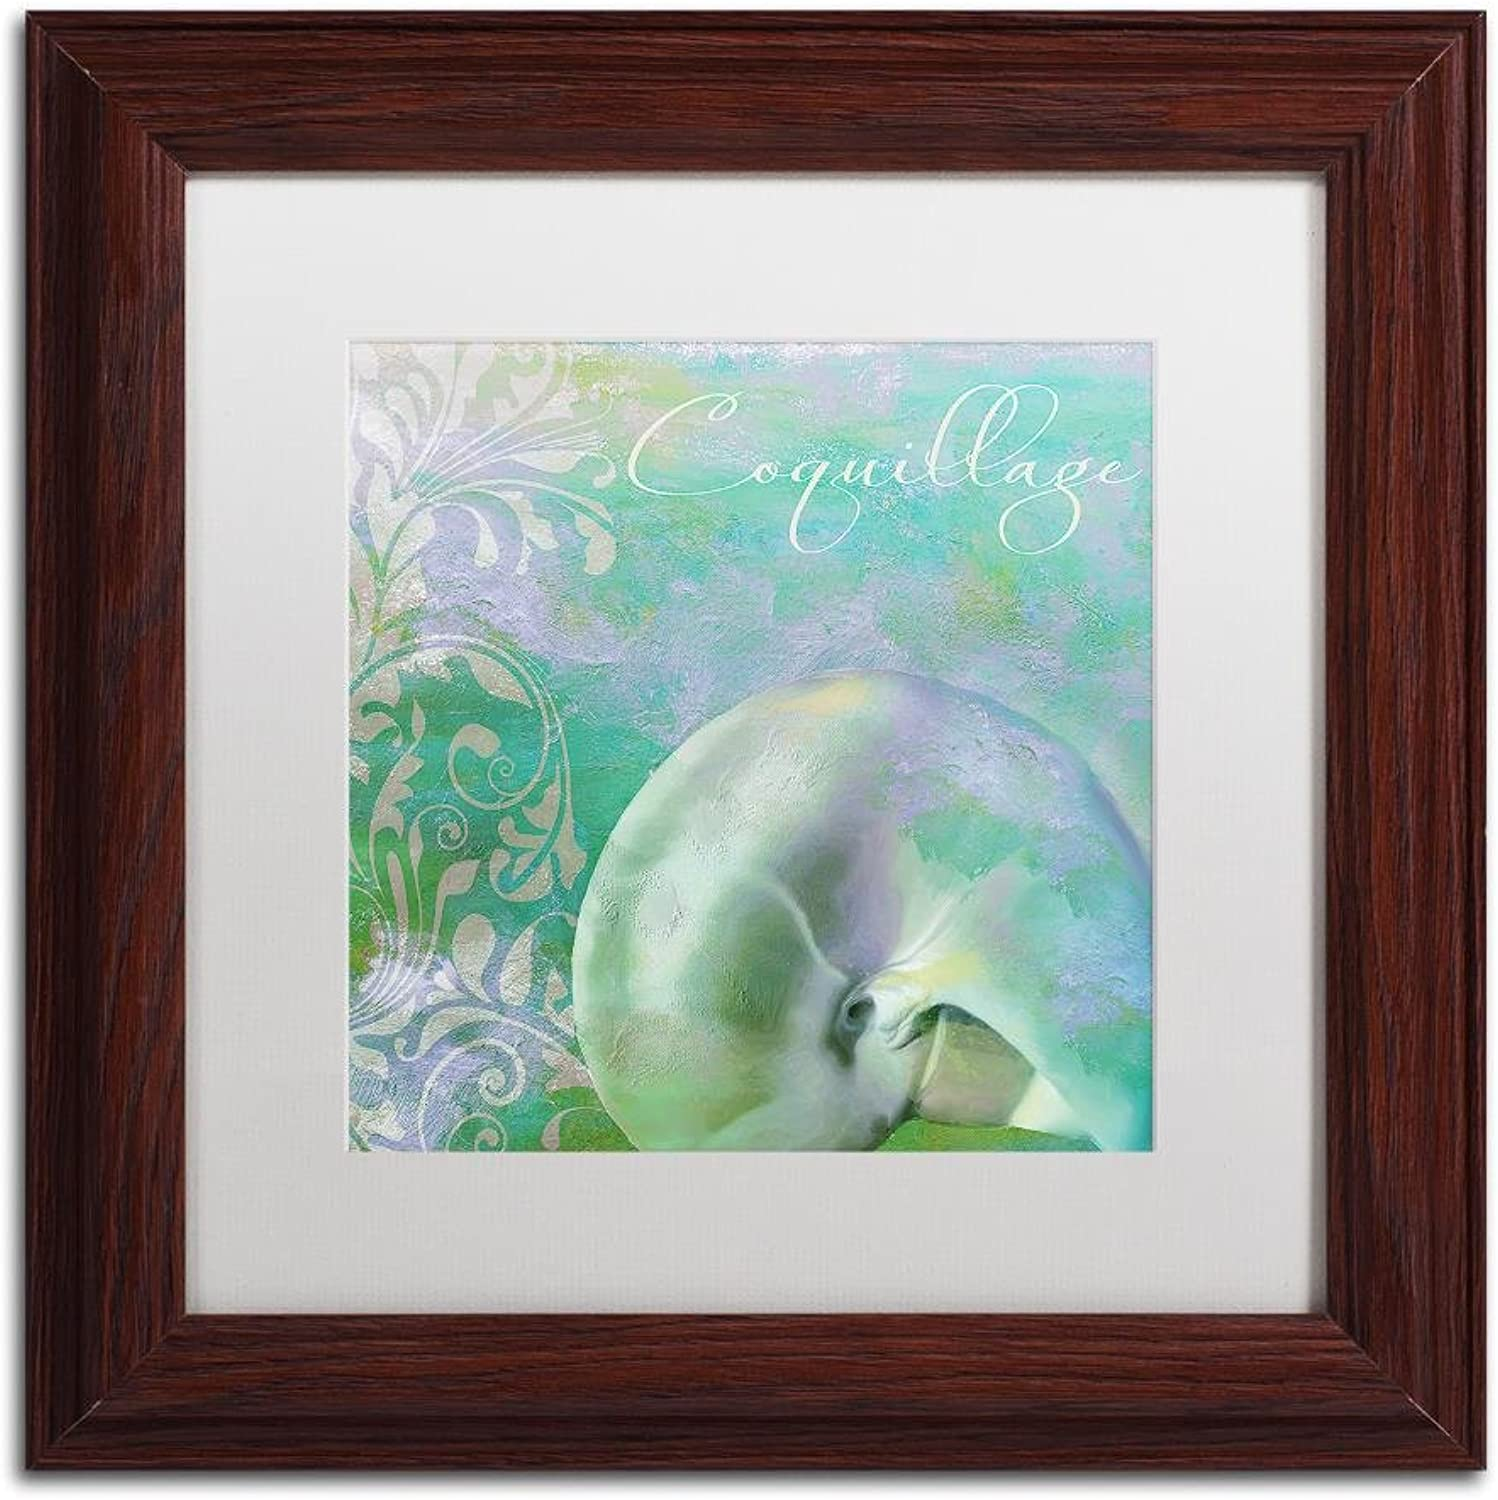 Trademark Fine Art Painted Sea II by color Bakery, White Matte, Wood Frame 11x11, Wall Art